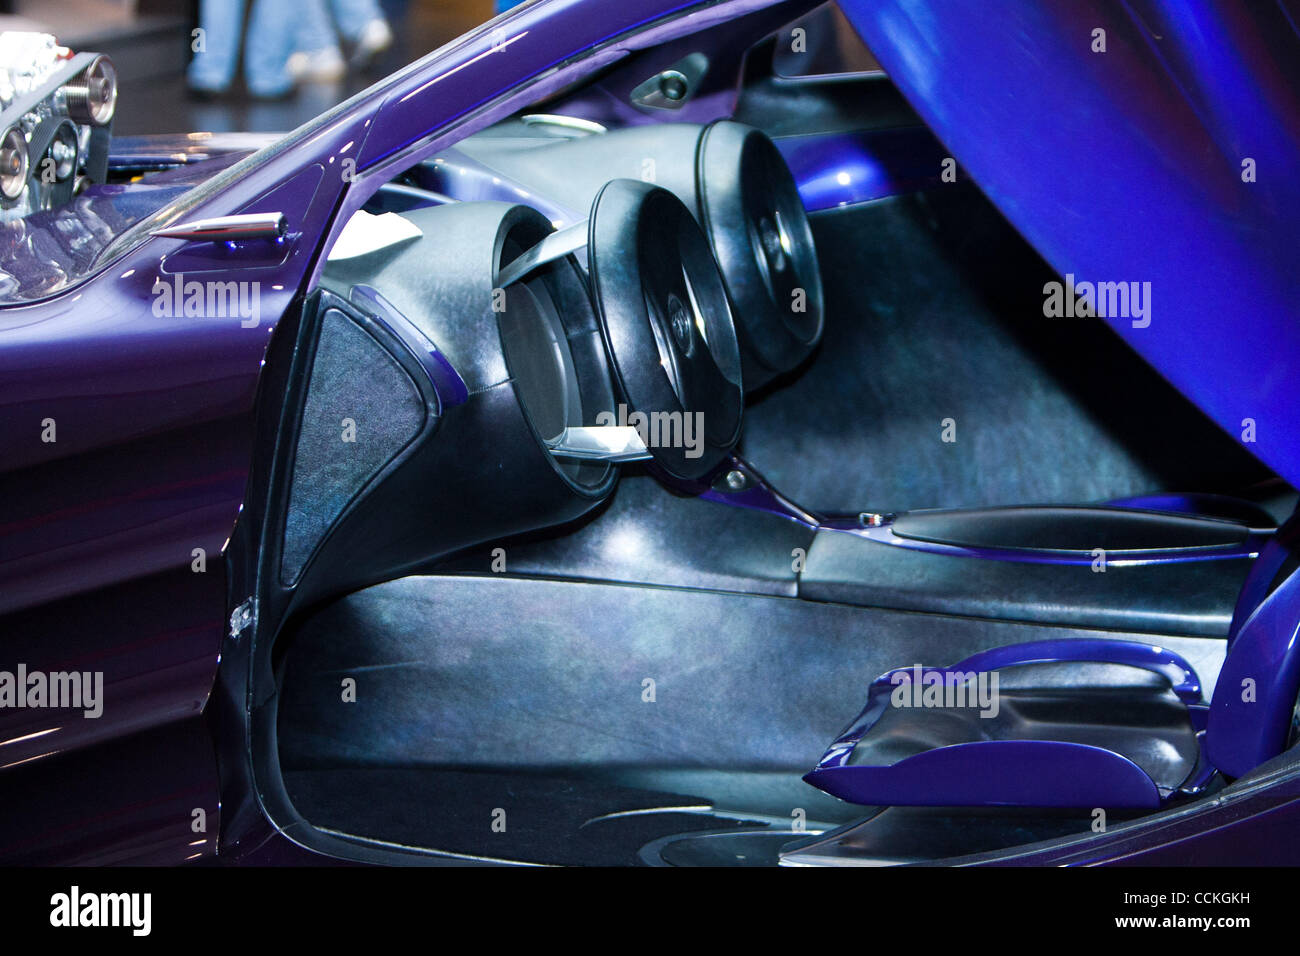 Vector Vectors Car Parts Stock Photos & Vector Vectors Car Parts ...